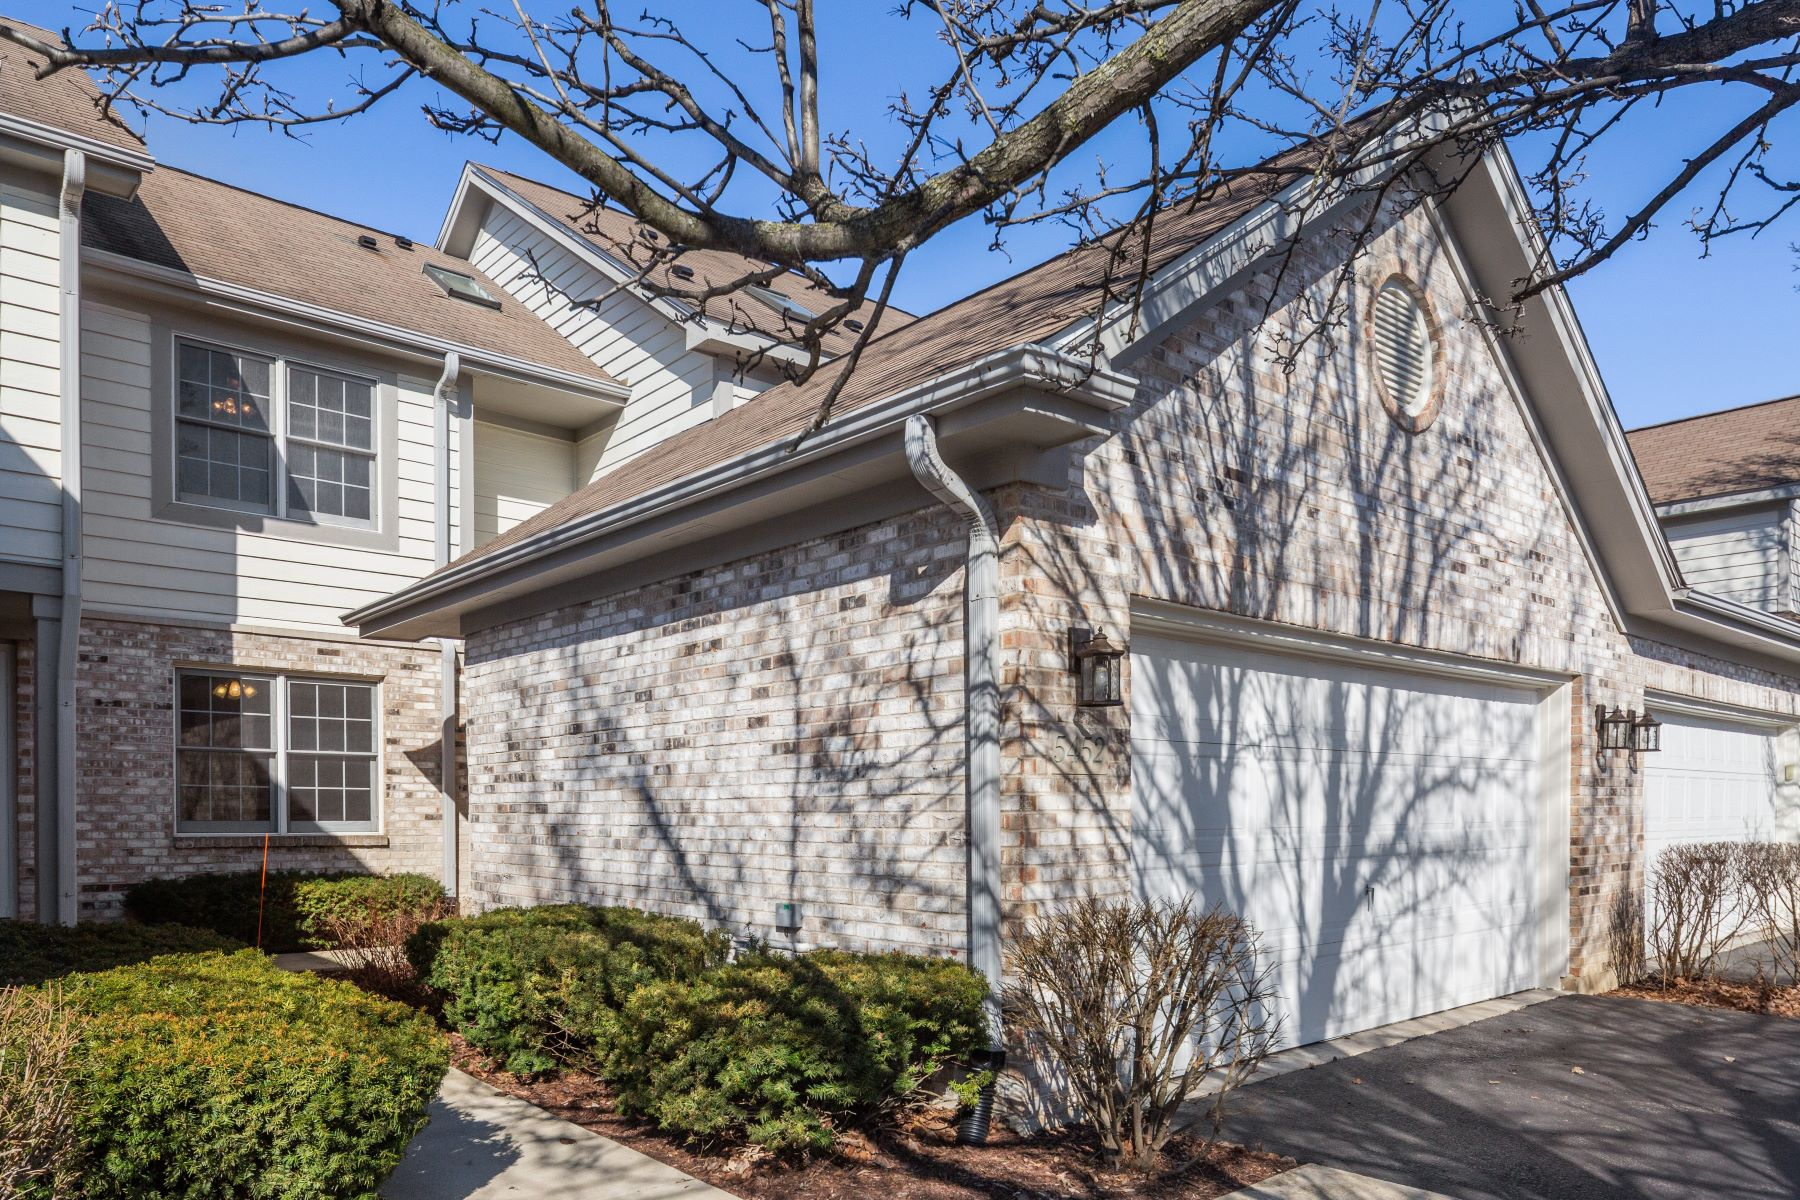 Single Family Home for Sale at Stunning Townhome on Quiet Cul De Sac 5452 Ashbrook Place Unit Downers Grove, Illinois 60515 United States